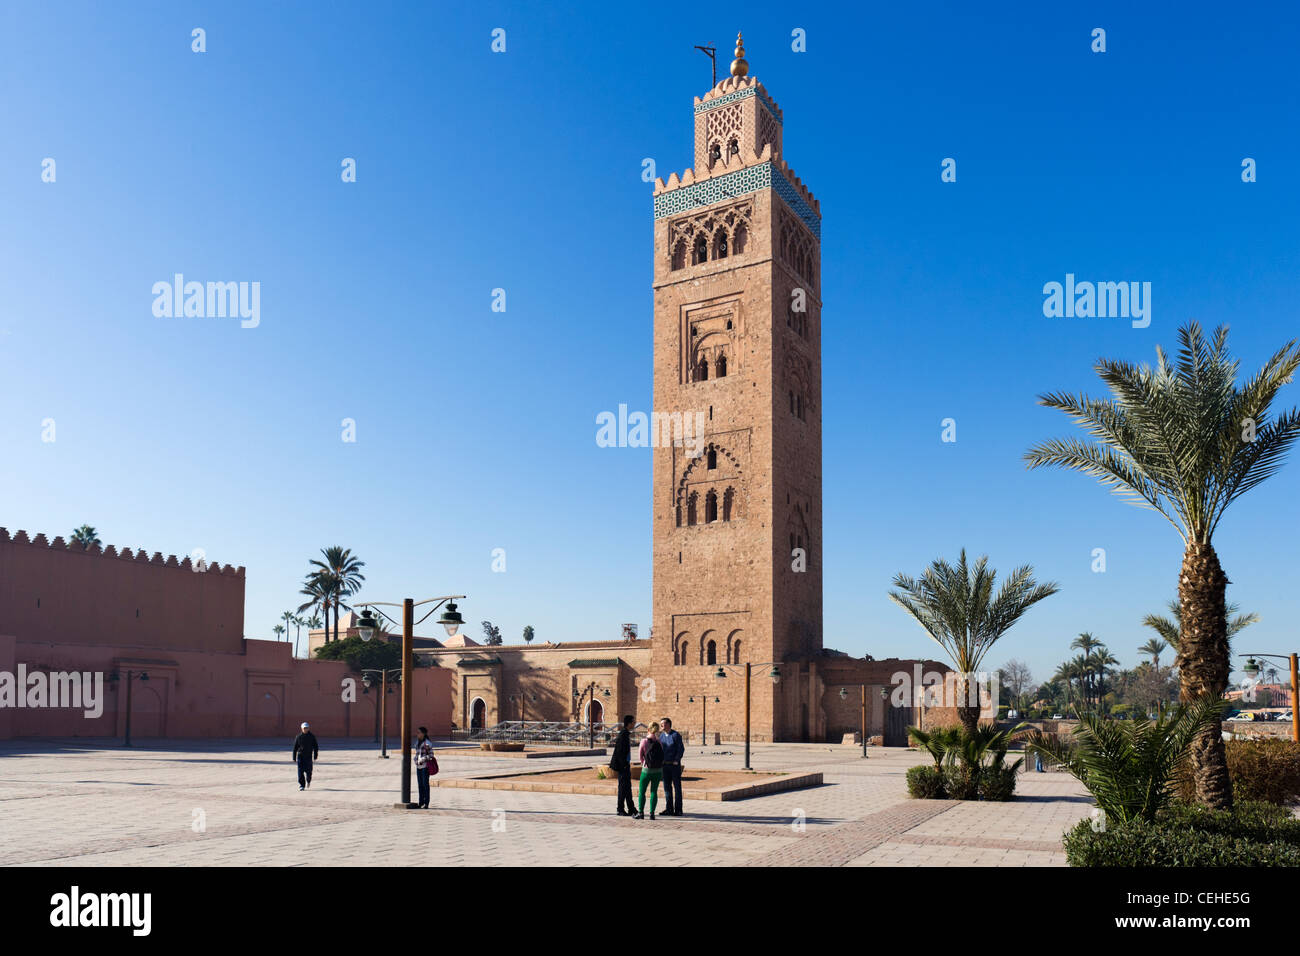 The minaret of the Koutoubia Mosque, Marrakech, Morocco, North Africa - Stock Image